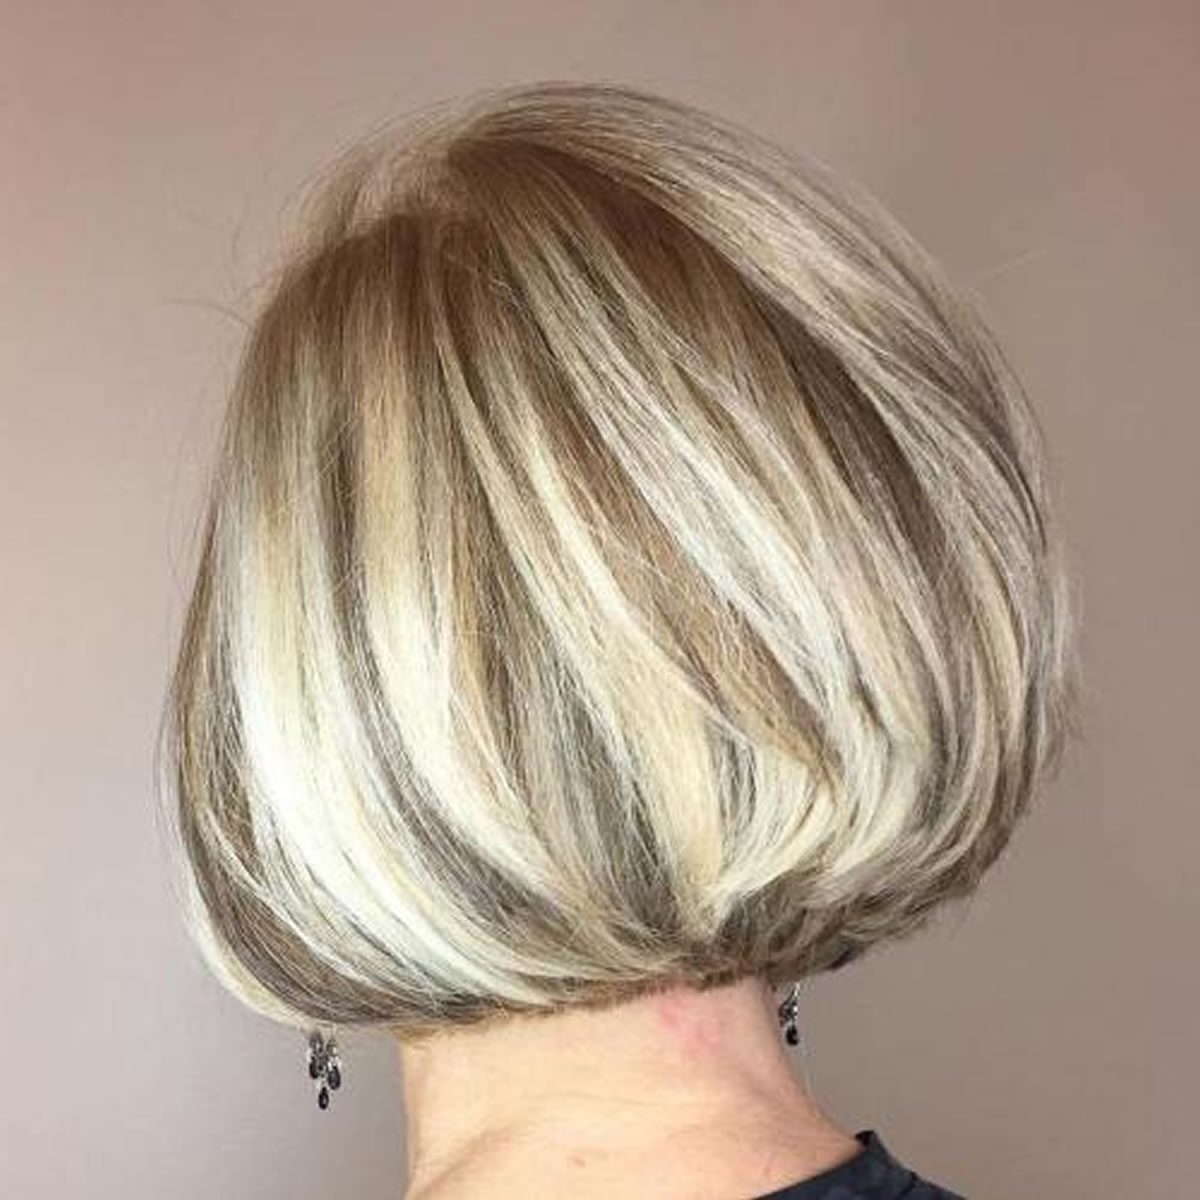 2018 Haircuts For Older Women Over 50 – New Trend Hair Ideas | Haircuts With Regard To Chic Blonde Pixie Bob Hairstyles For Women Over (View 11 of 20)